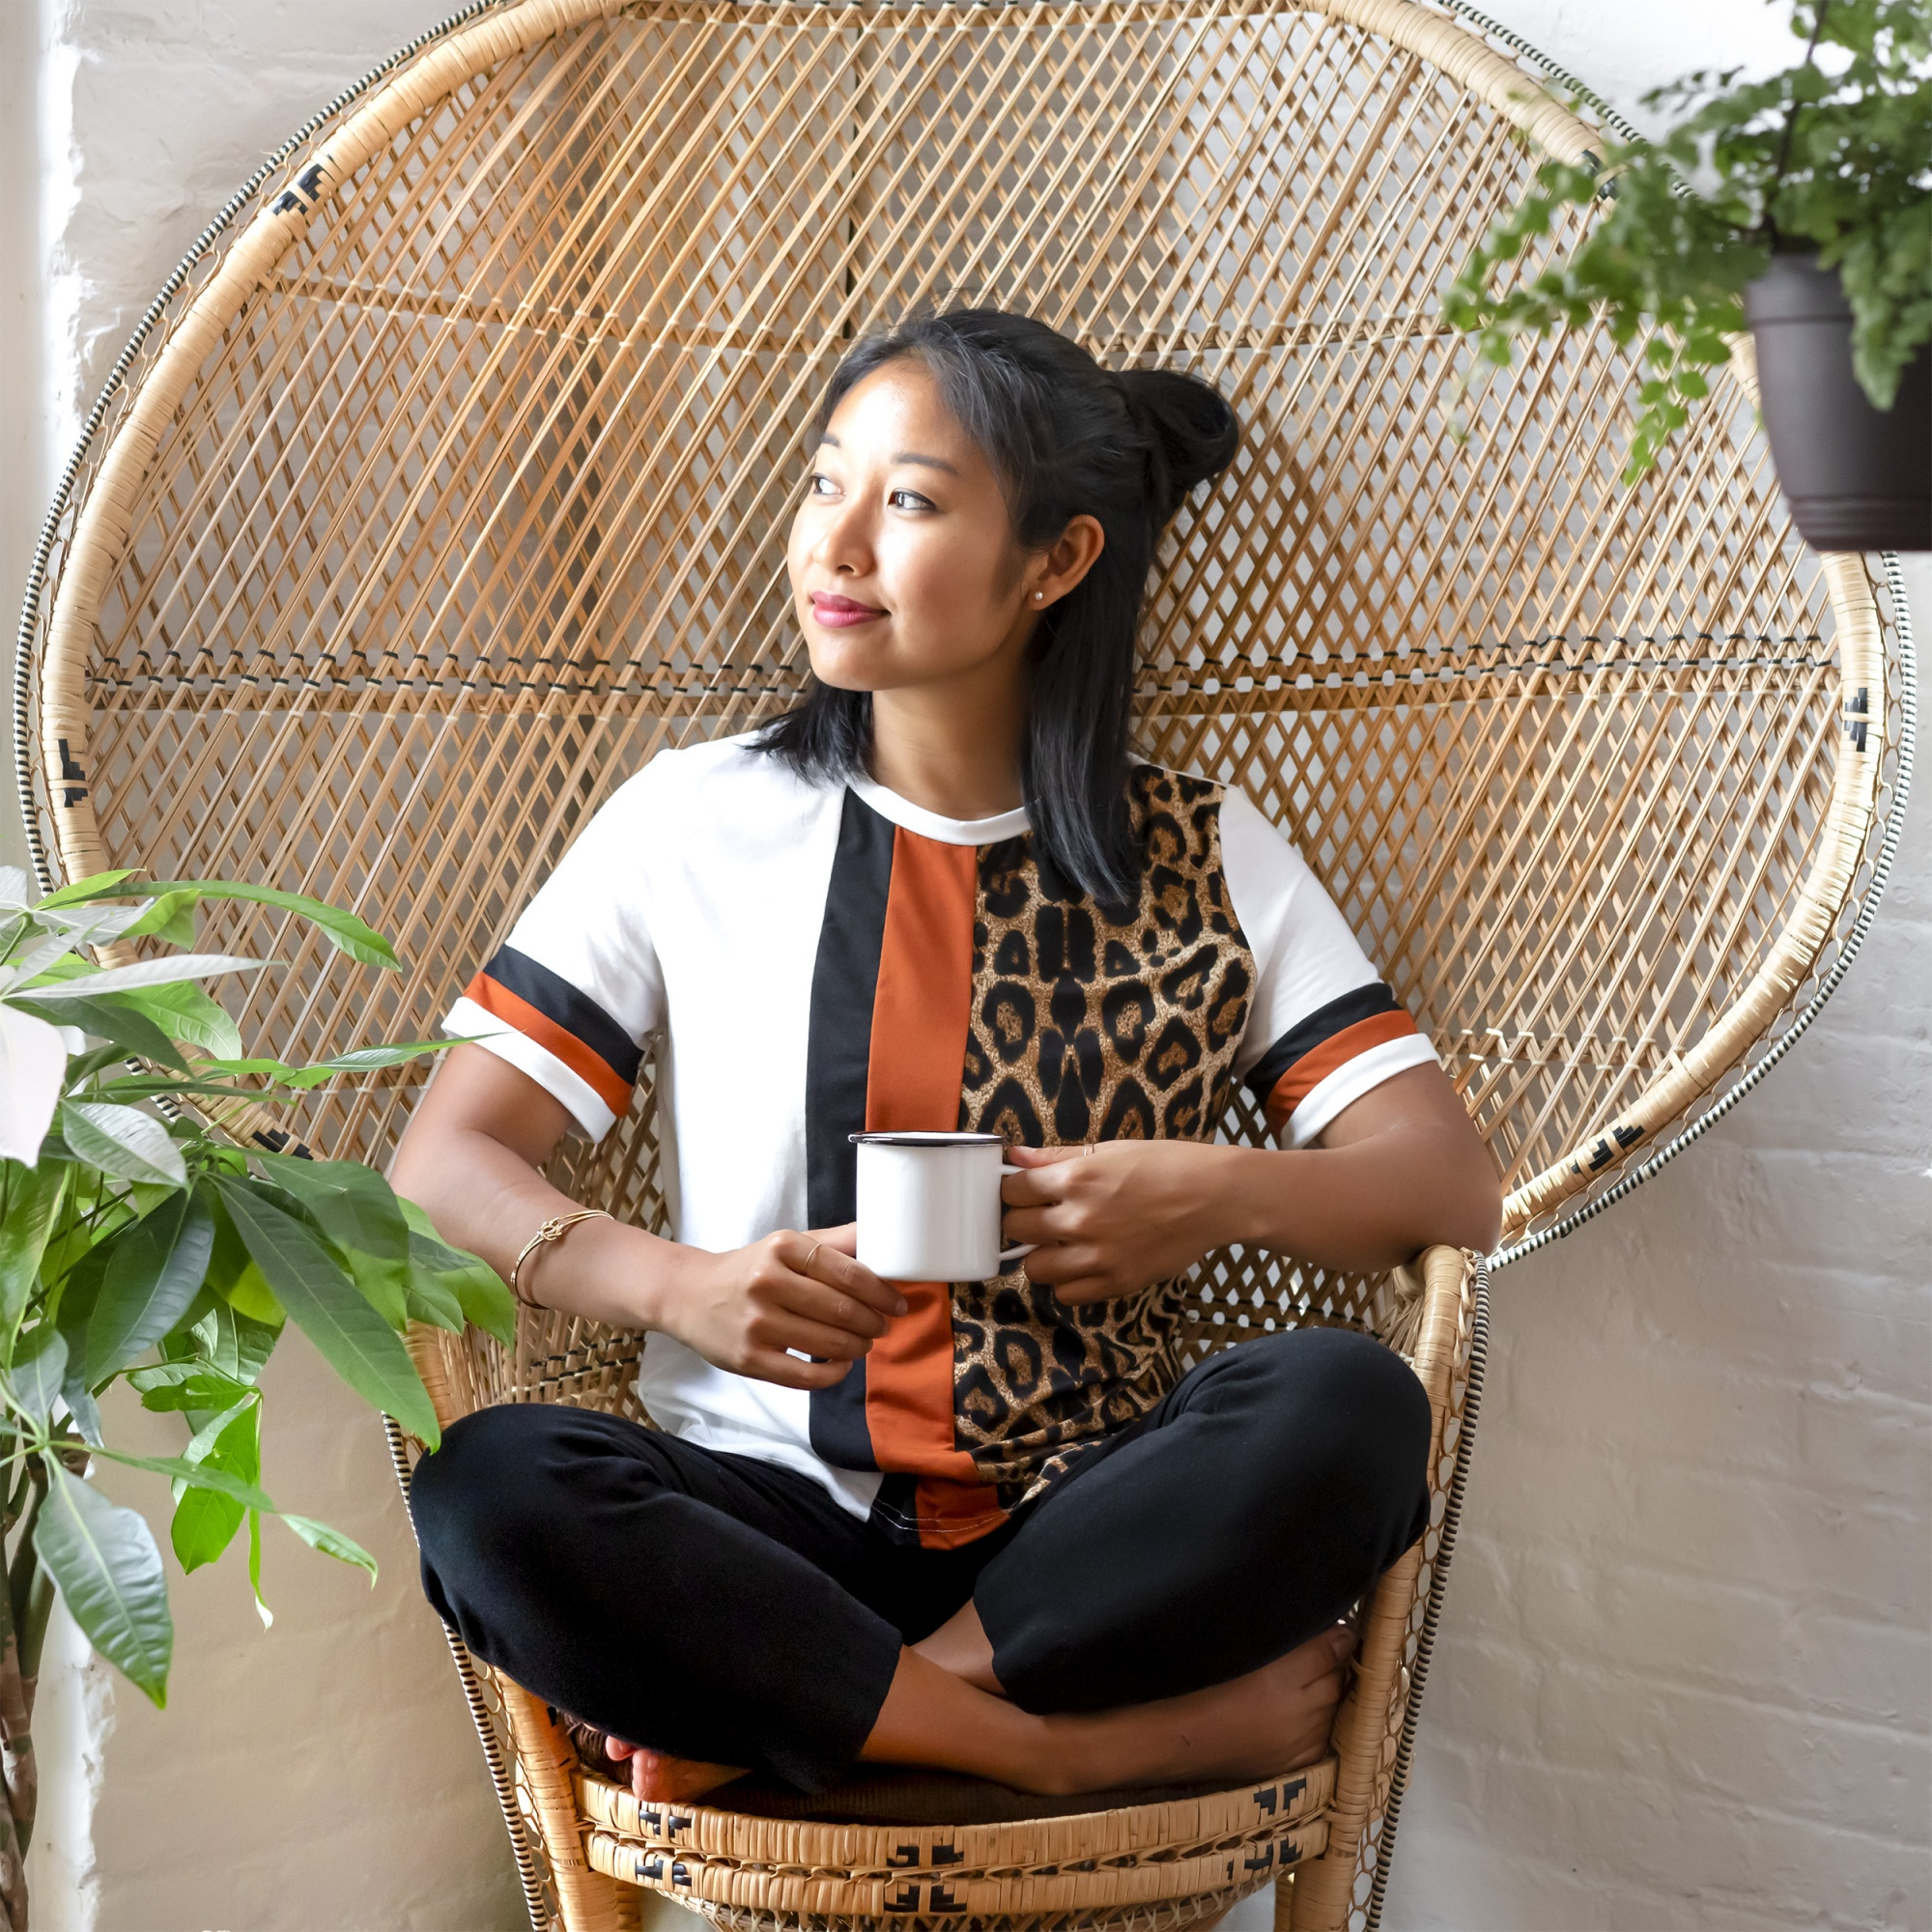 self-care and self-love, asian woman sitting crosslegged in rattan chair holding mug and thinking positive thoughts